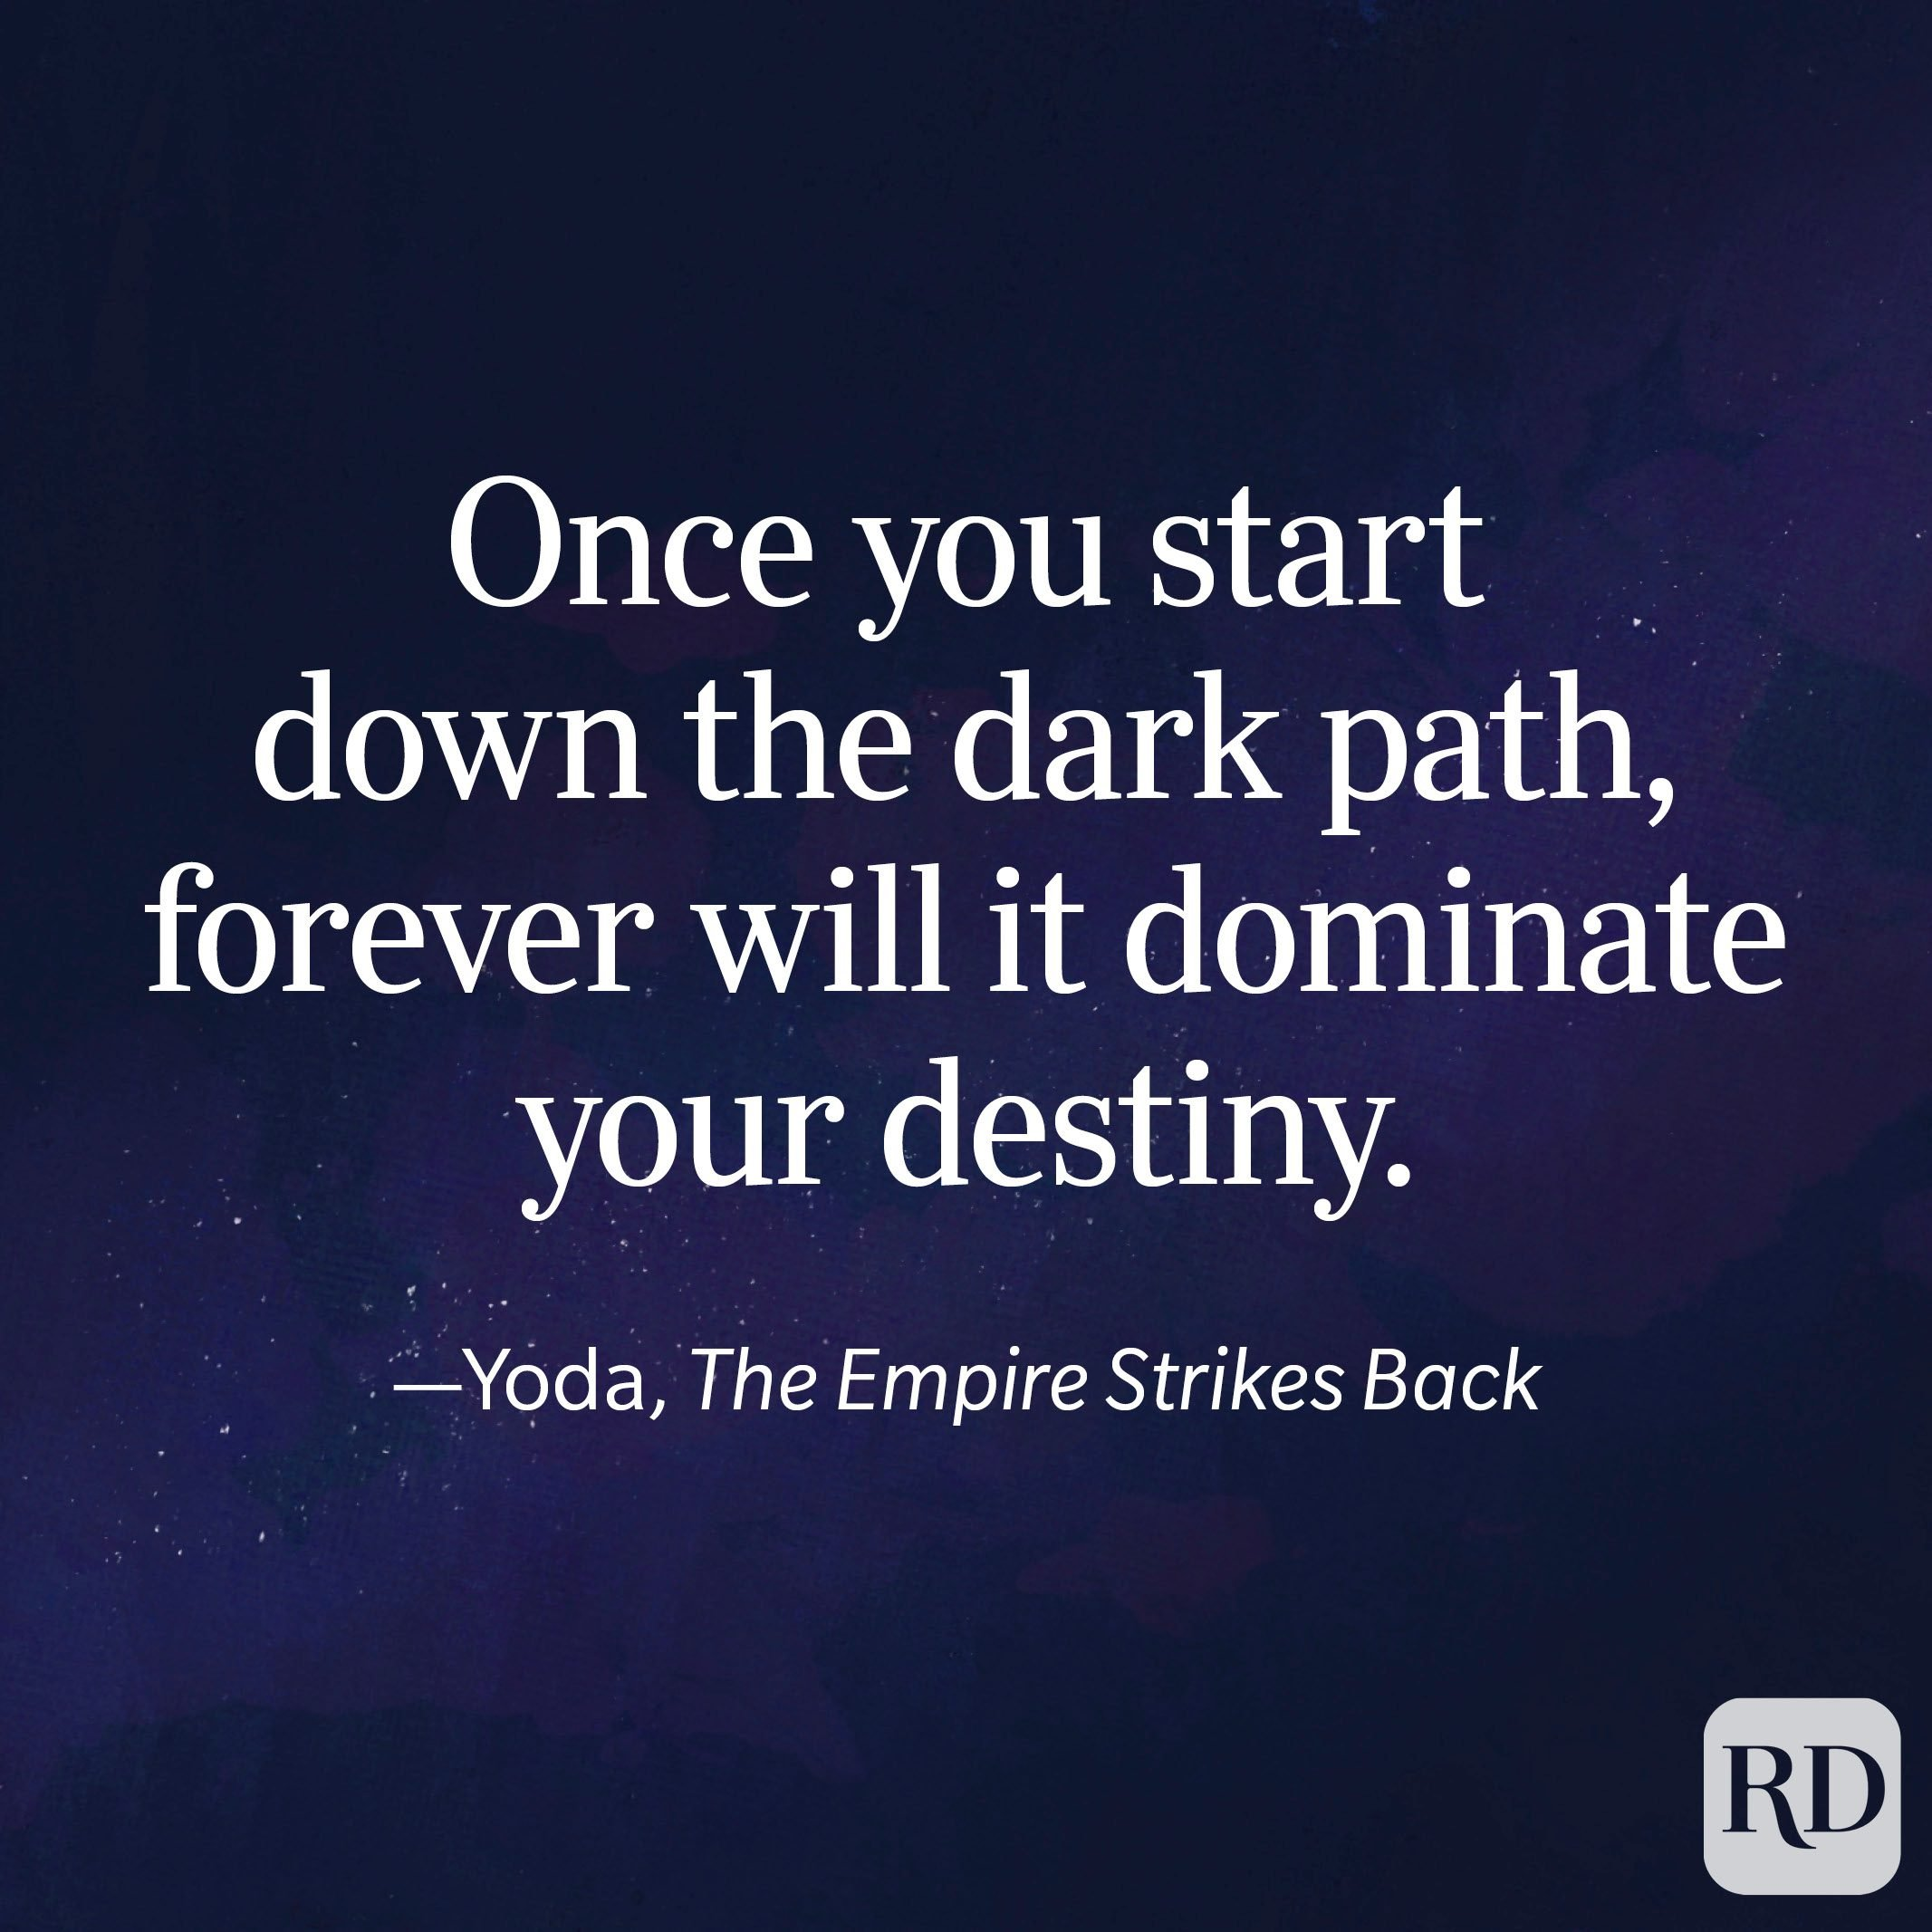 """""""Once you start down the dark path, forever will it dominate your destiny."""" —Yoda, The Empire Strikes Back"""